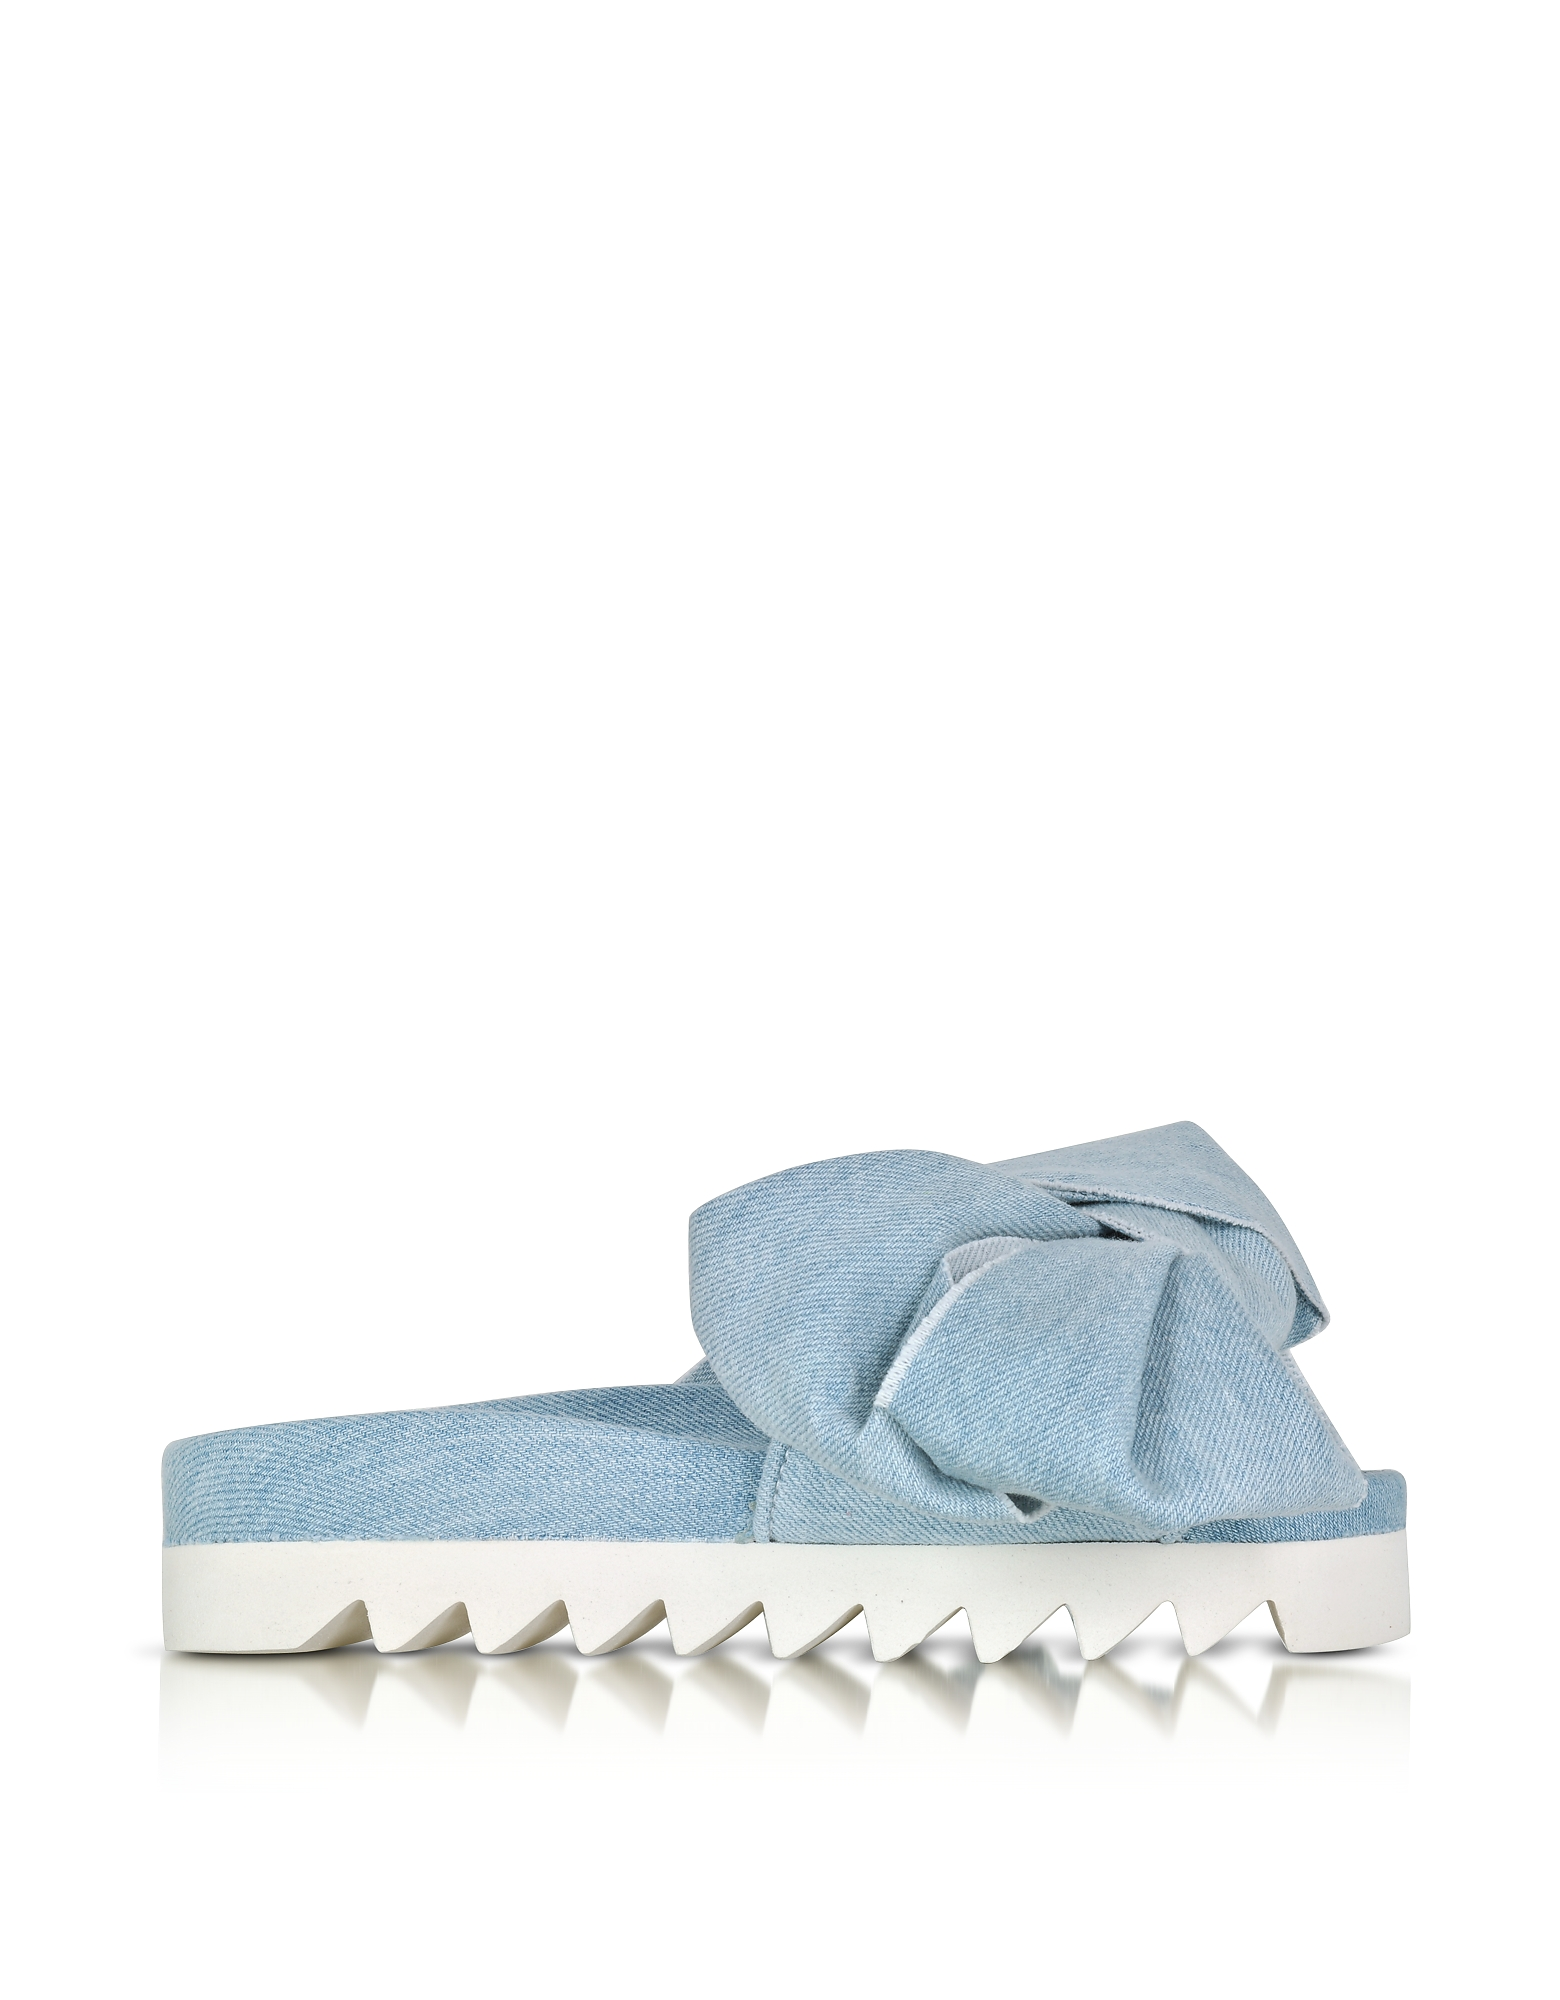 Joshua Sanders Shoes, Azure Denim Bow Slide